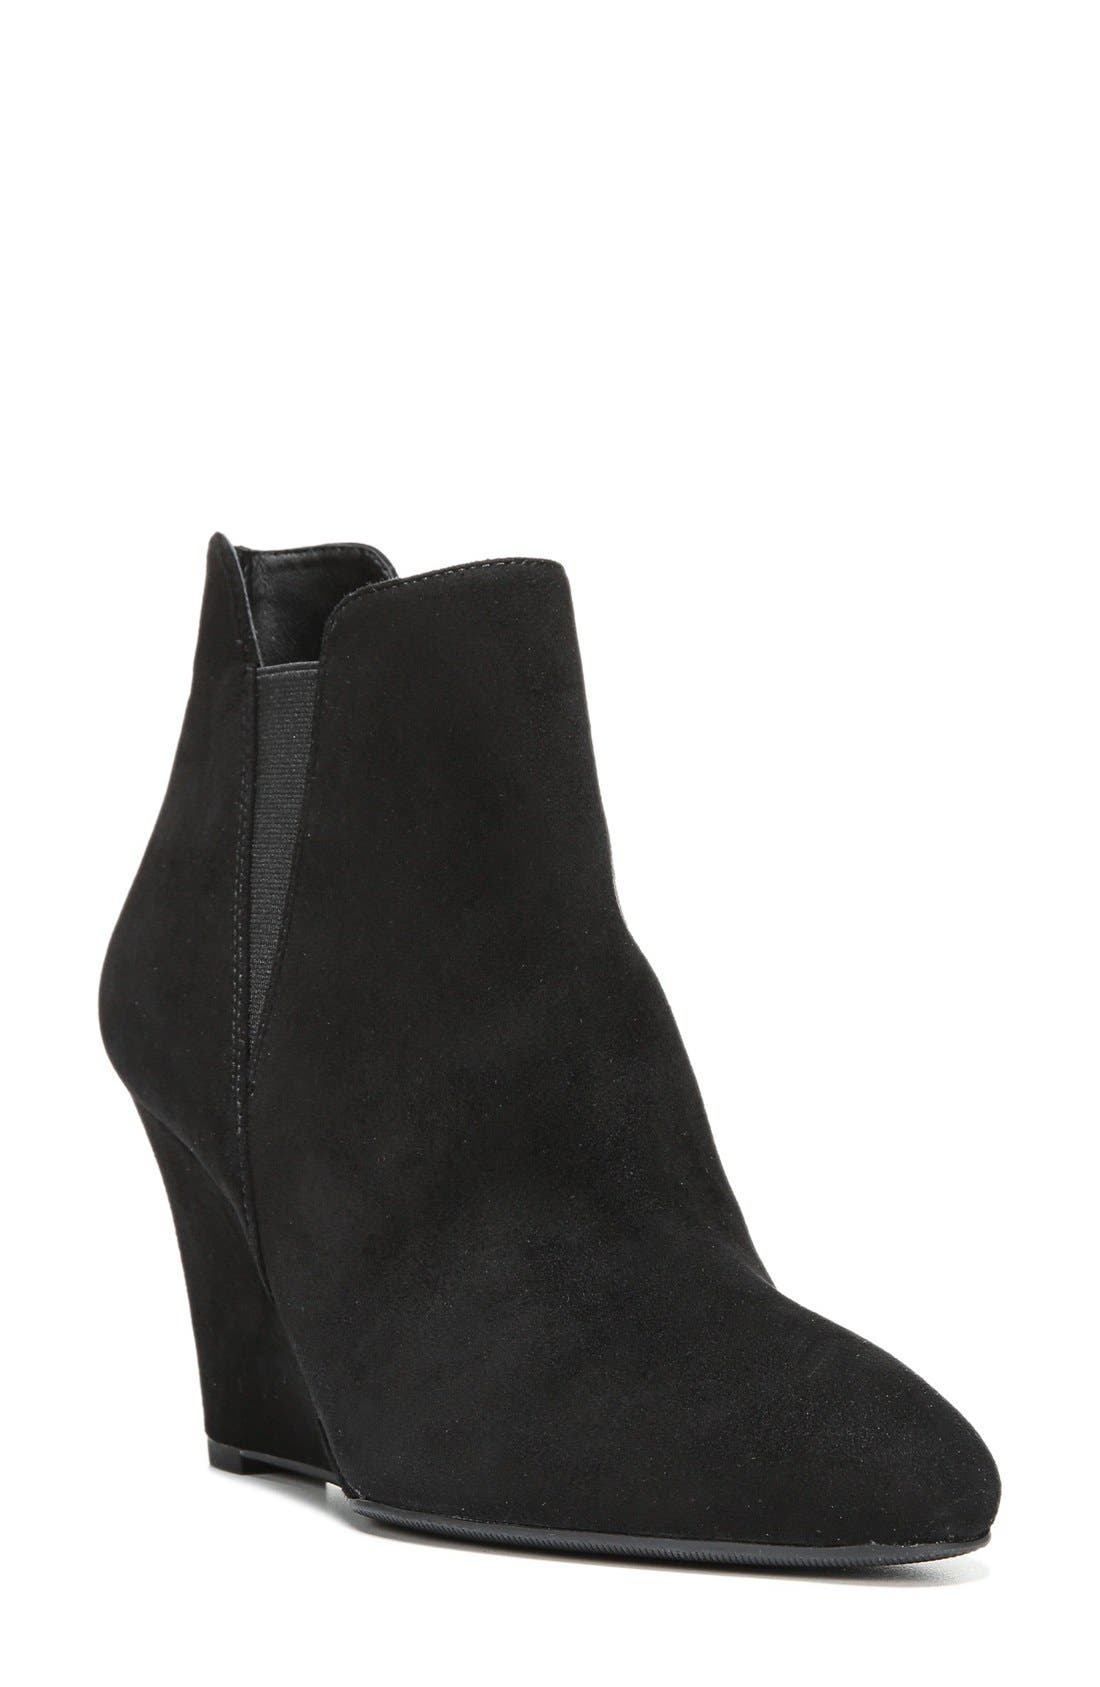 'Kenzie' Wedge Bootie,                             Main thumbnail 1, color,                             002